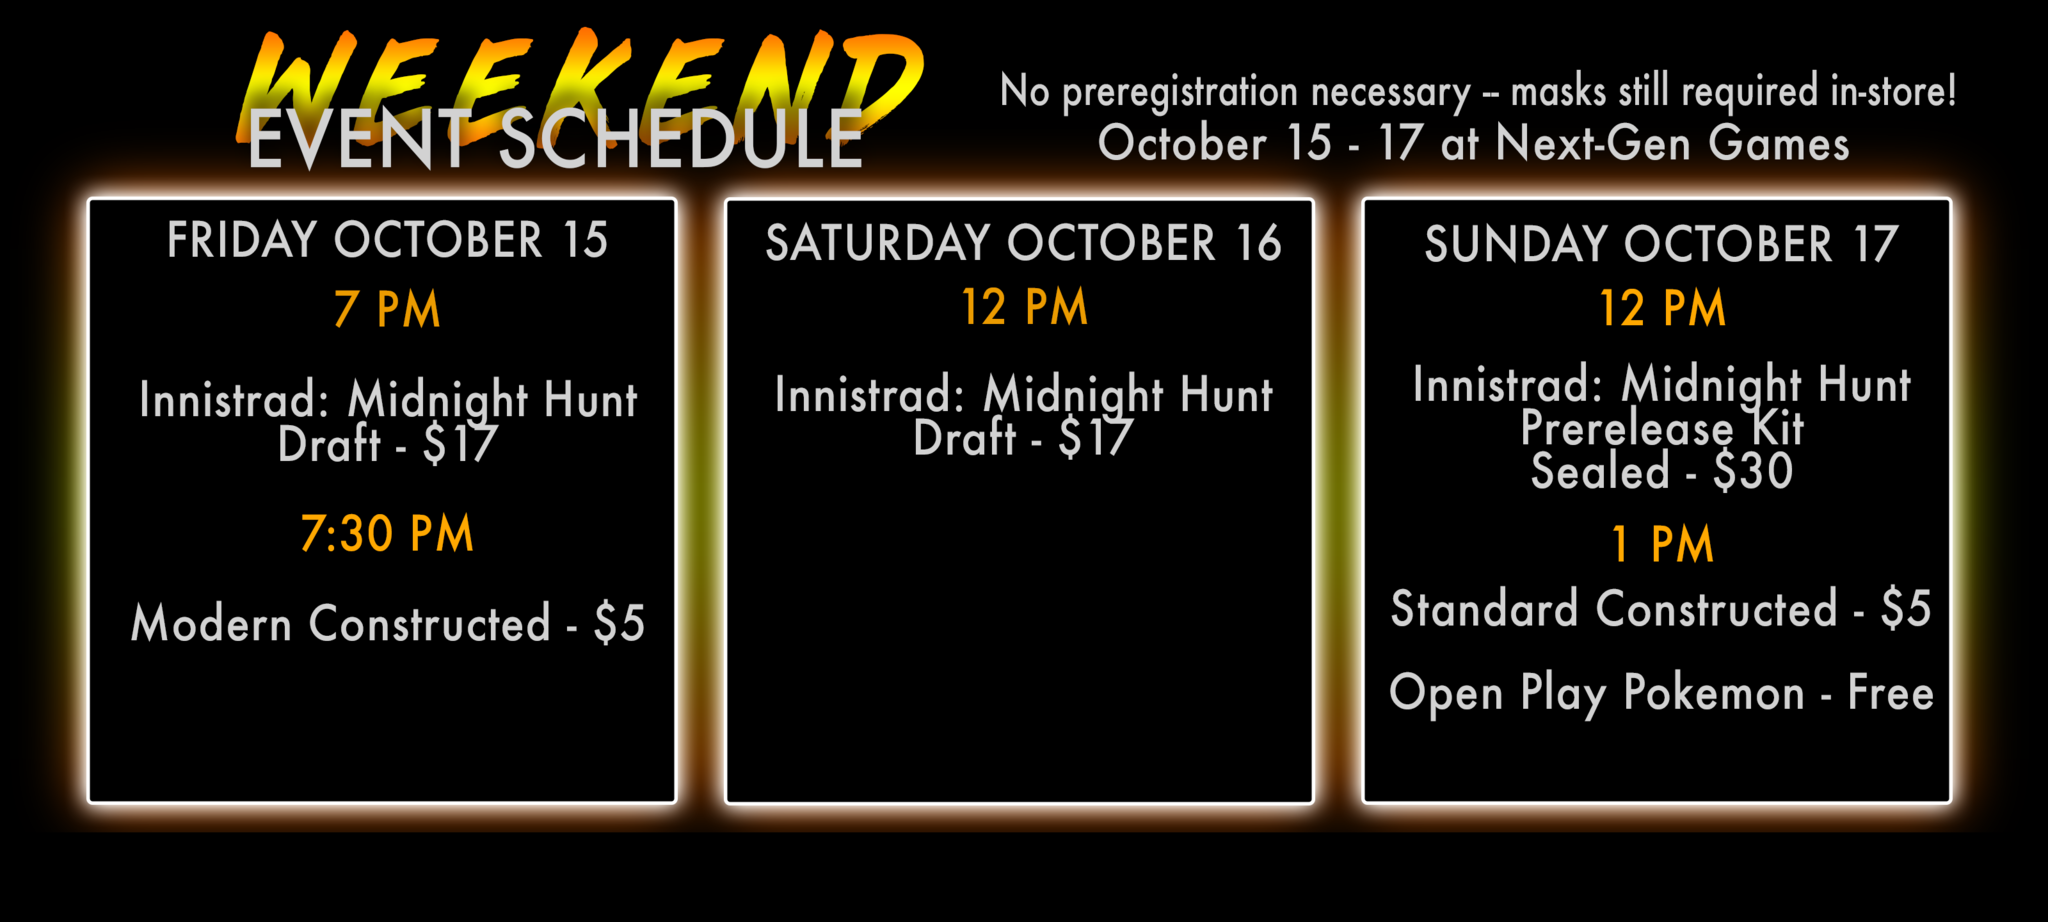 Weekend Event Schedule. No preregistrataion necessary, masks still required in store. October 15-17 at Next-Gen Games. Friday october 15 7PM Innistrad midnight hunt draft $17, 7:30PM modern constructed $5. saturday october 16 12PM Innistrad midnight hunt draft $17. Sunday october 17 12PM innistrad midnight hunt prerelease kit sealed $30, 1PM standard constructed $5, open play pokemon free